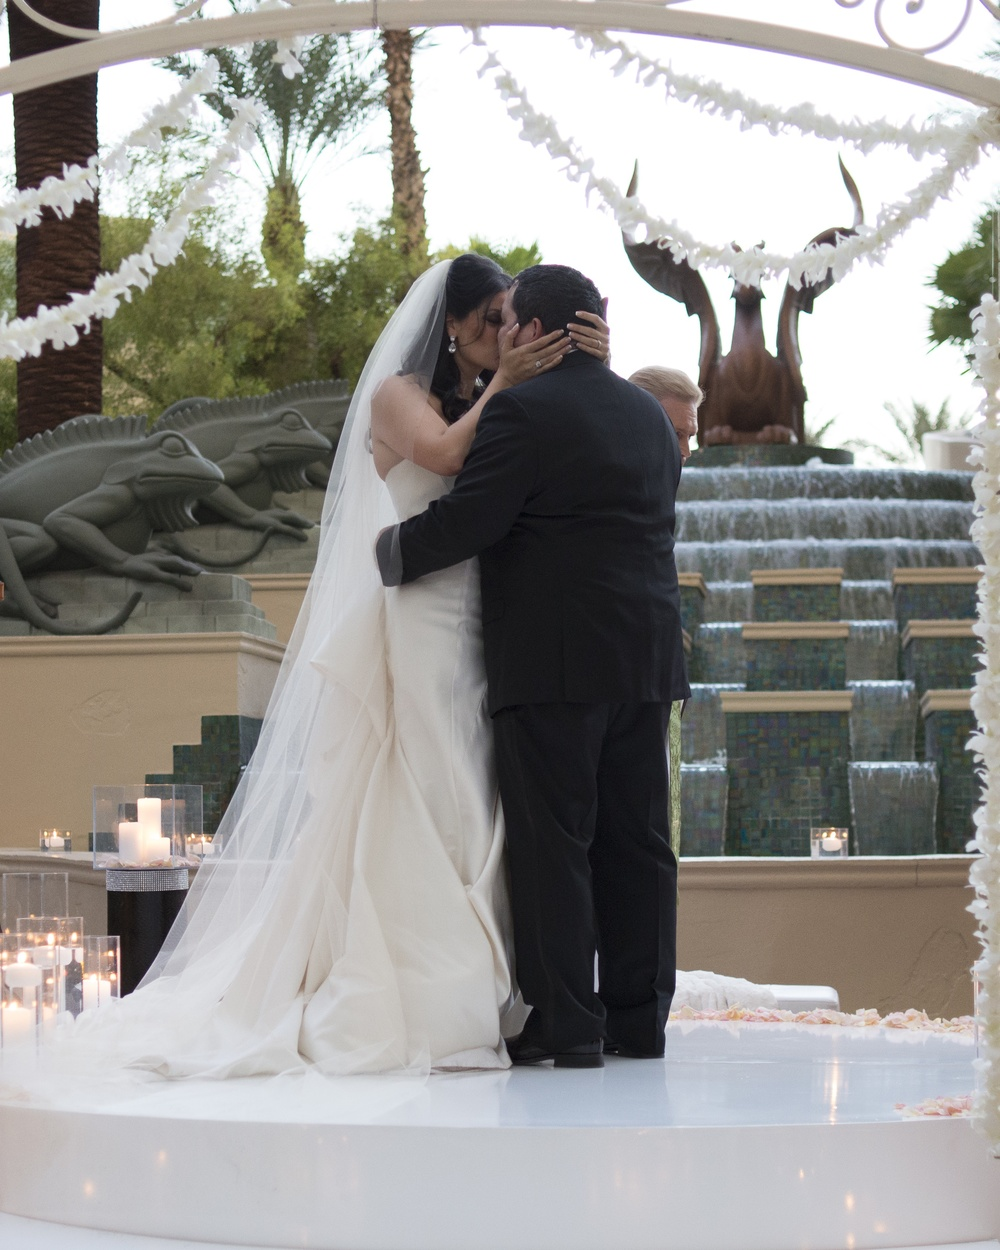 First Kiss - An Intimate Wedding at Four Seasons Las Vegas.